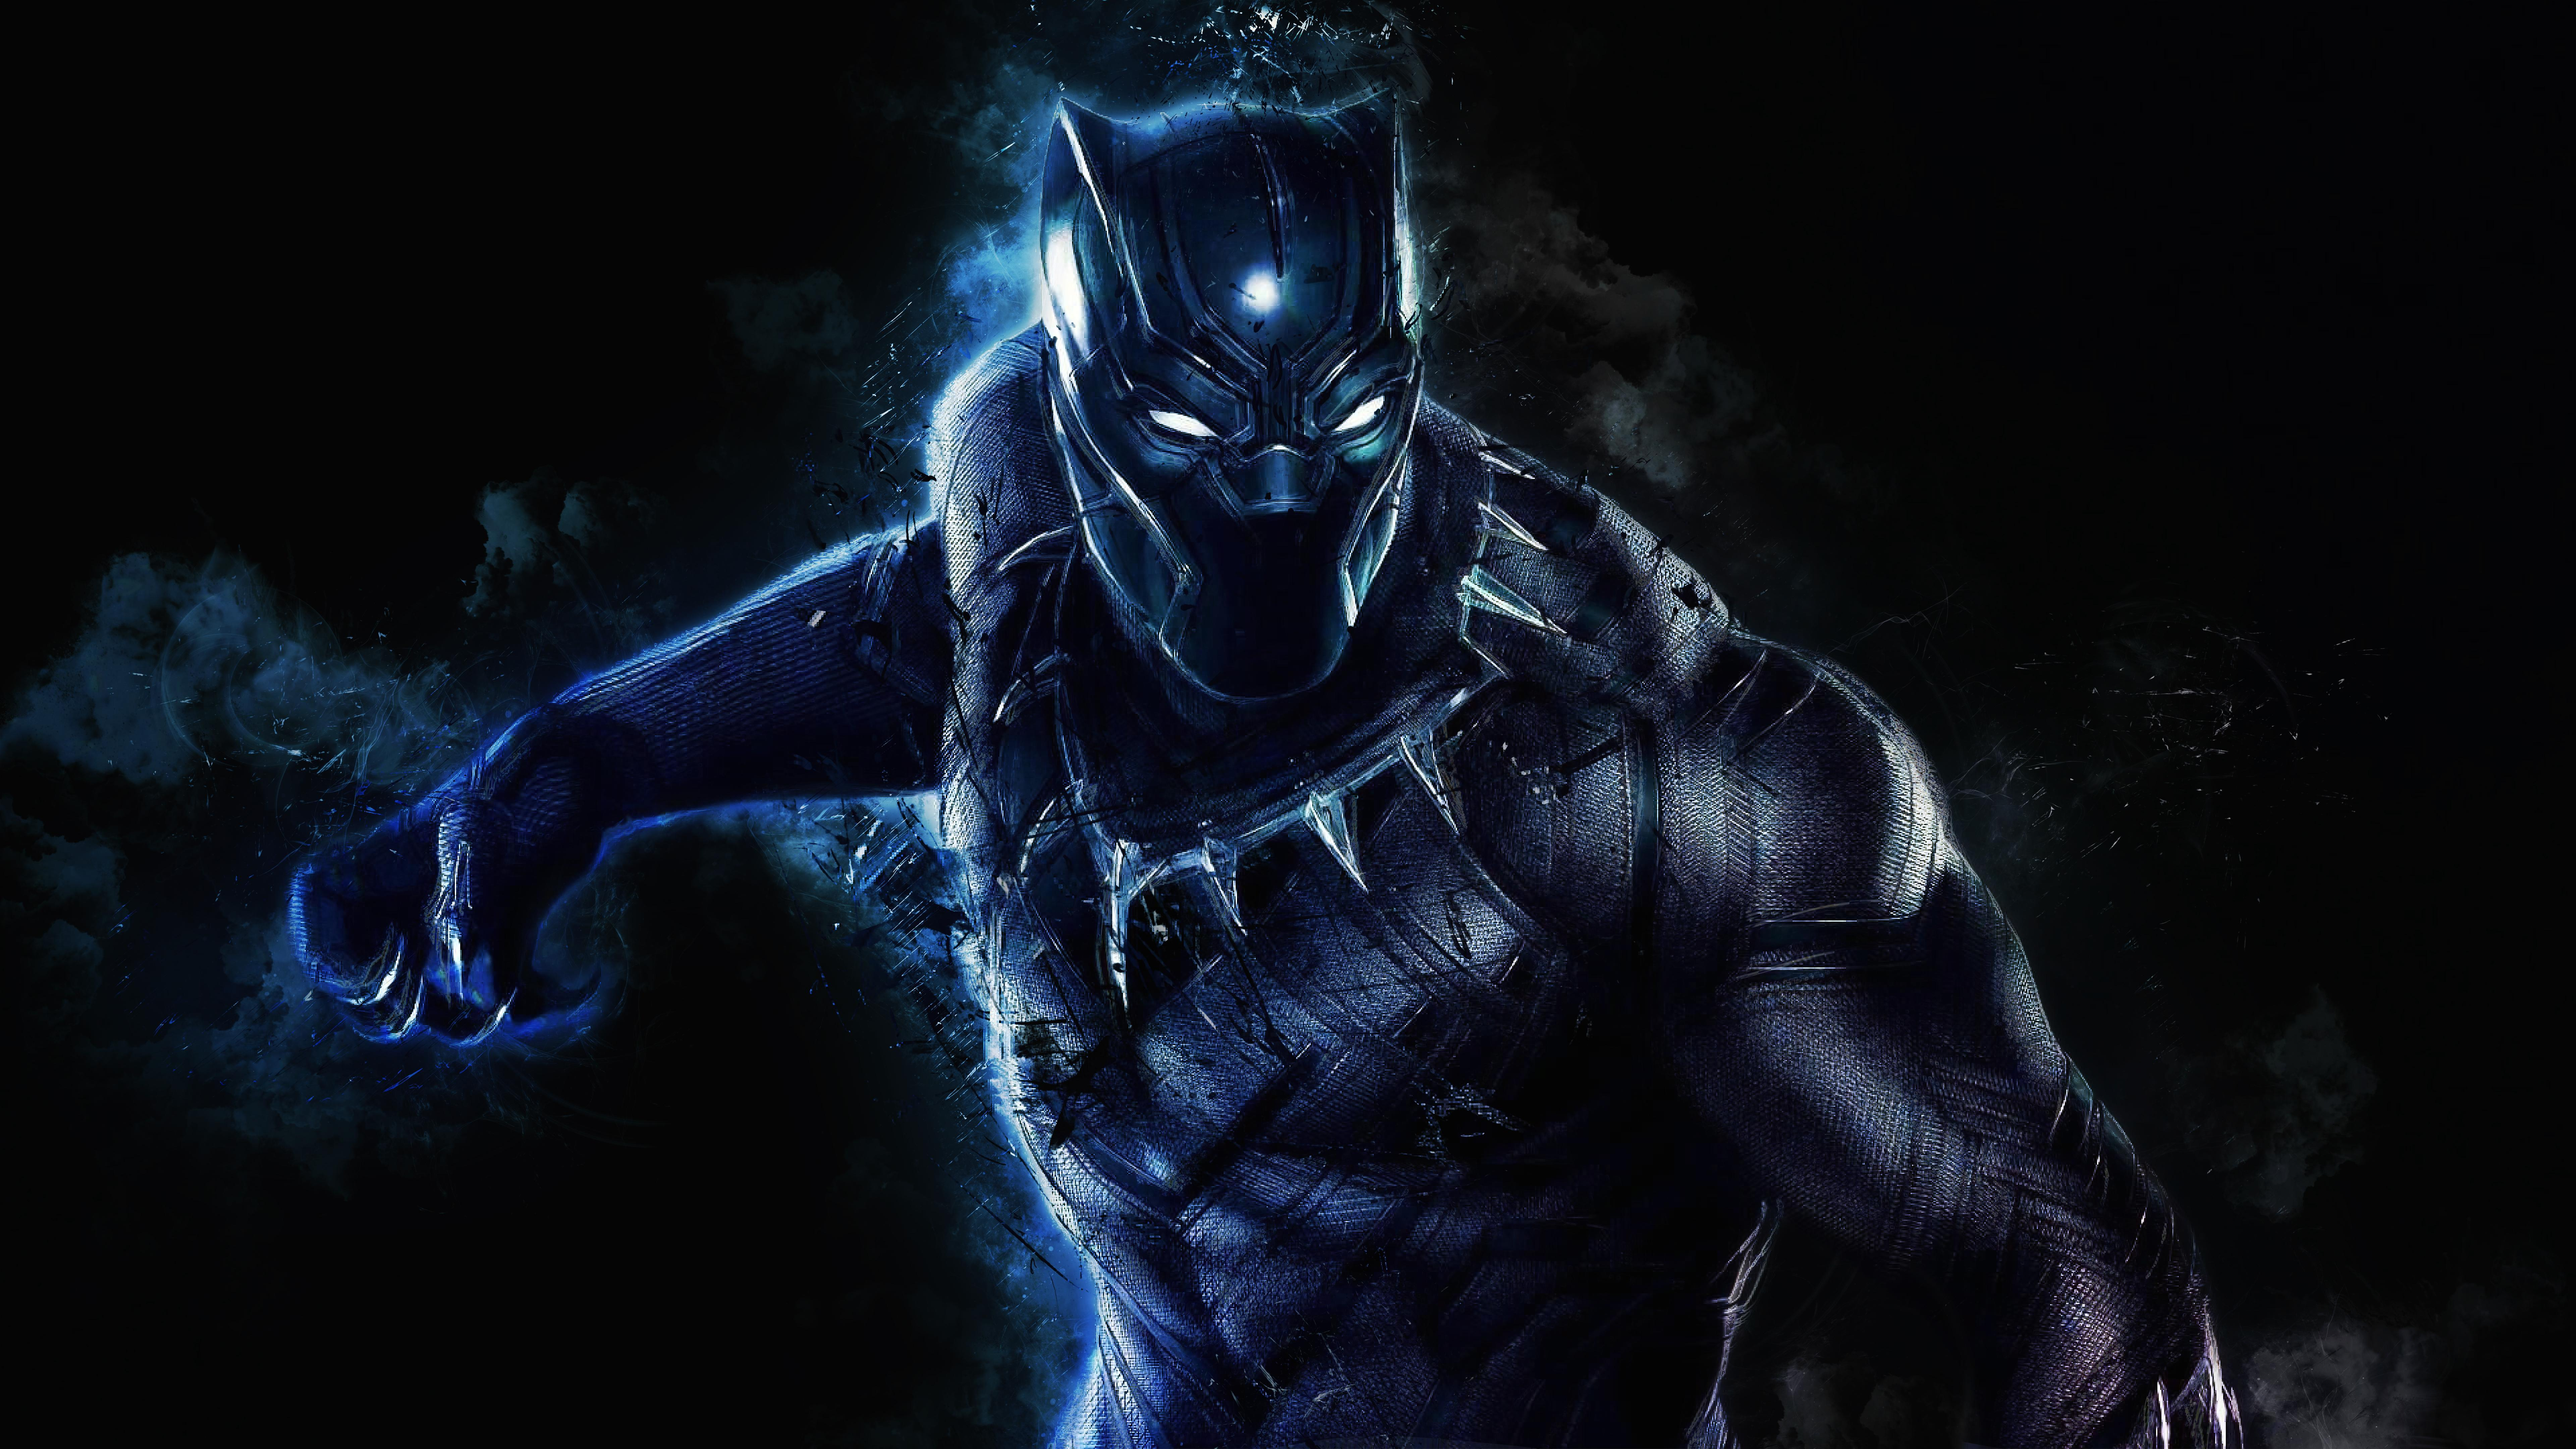 21+ Black Panther Dreamscape Wallpaper PNG